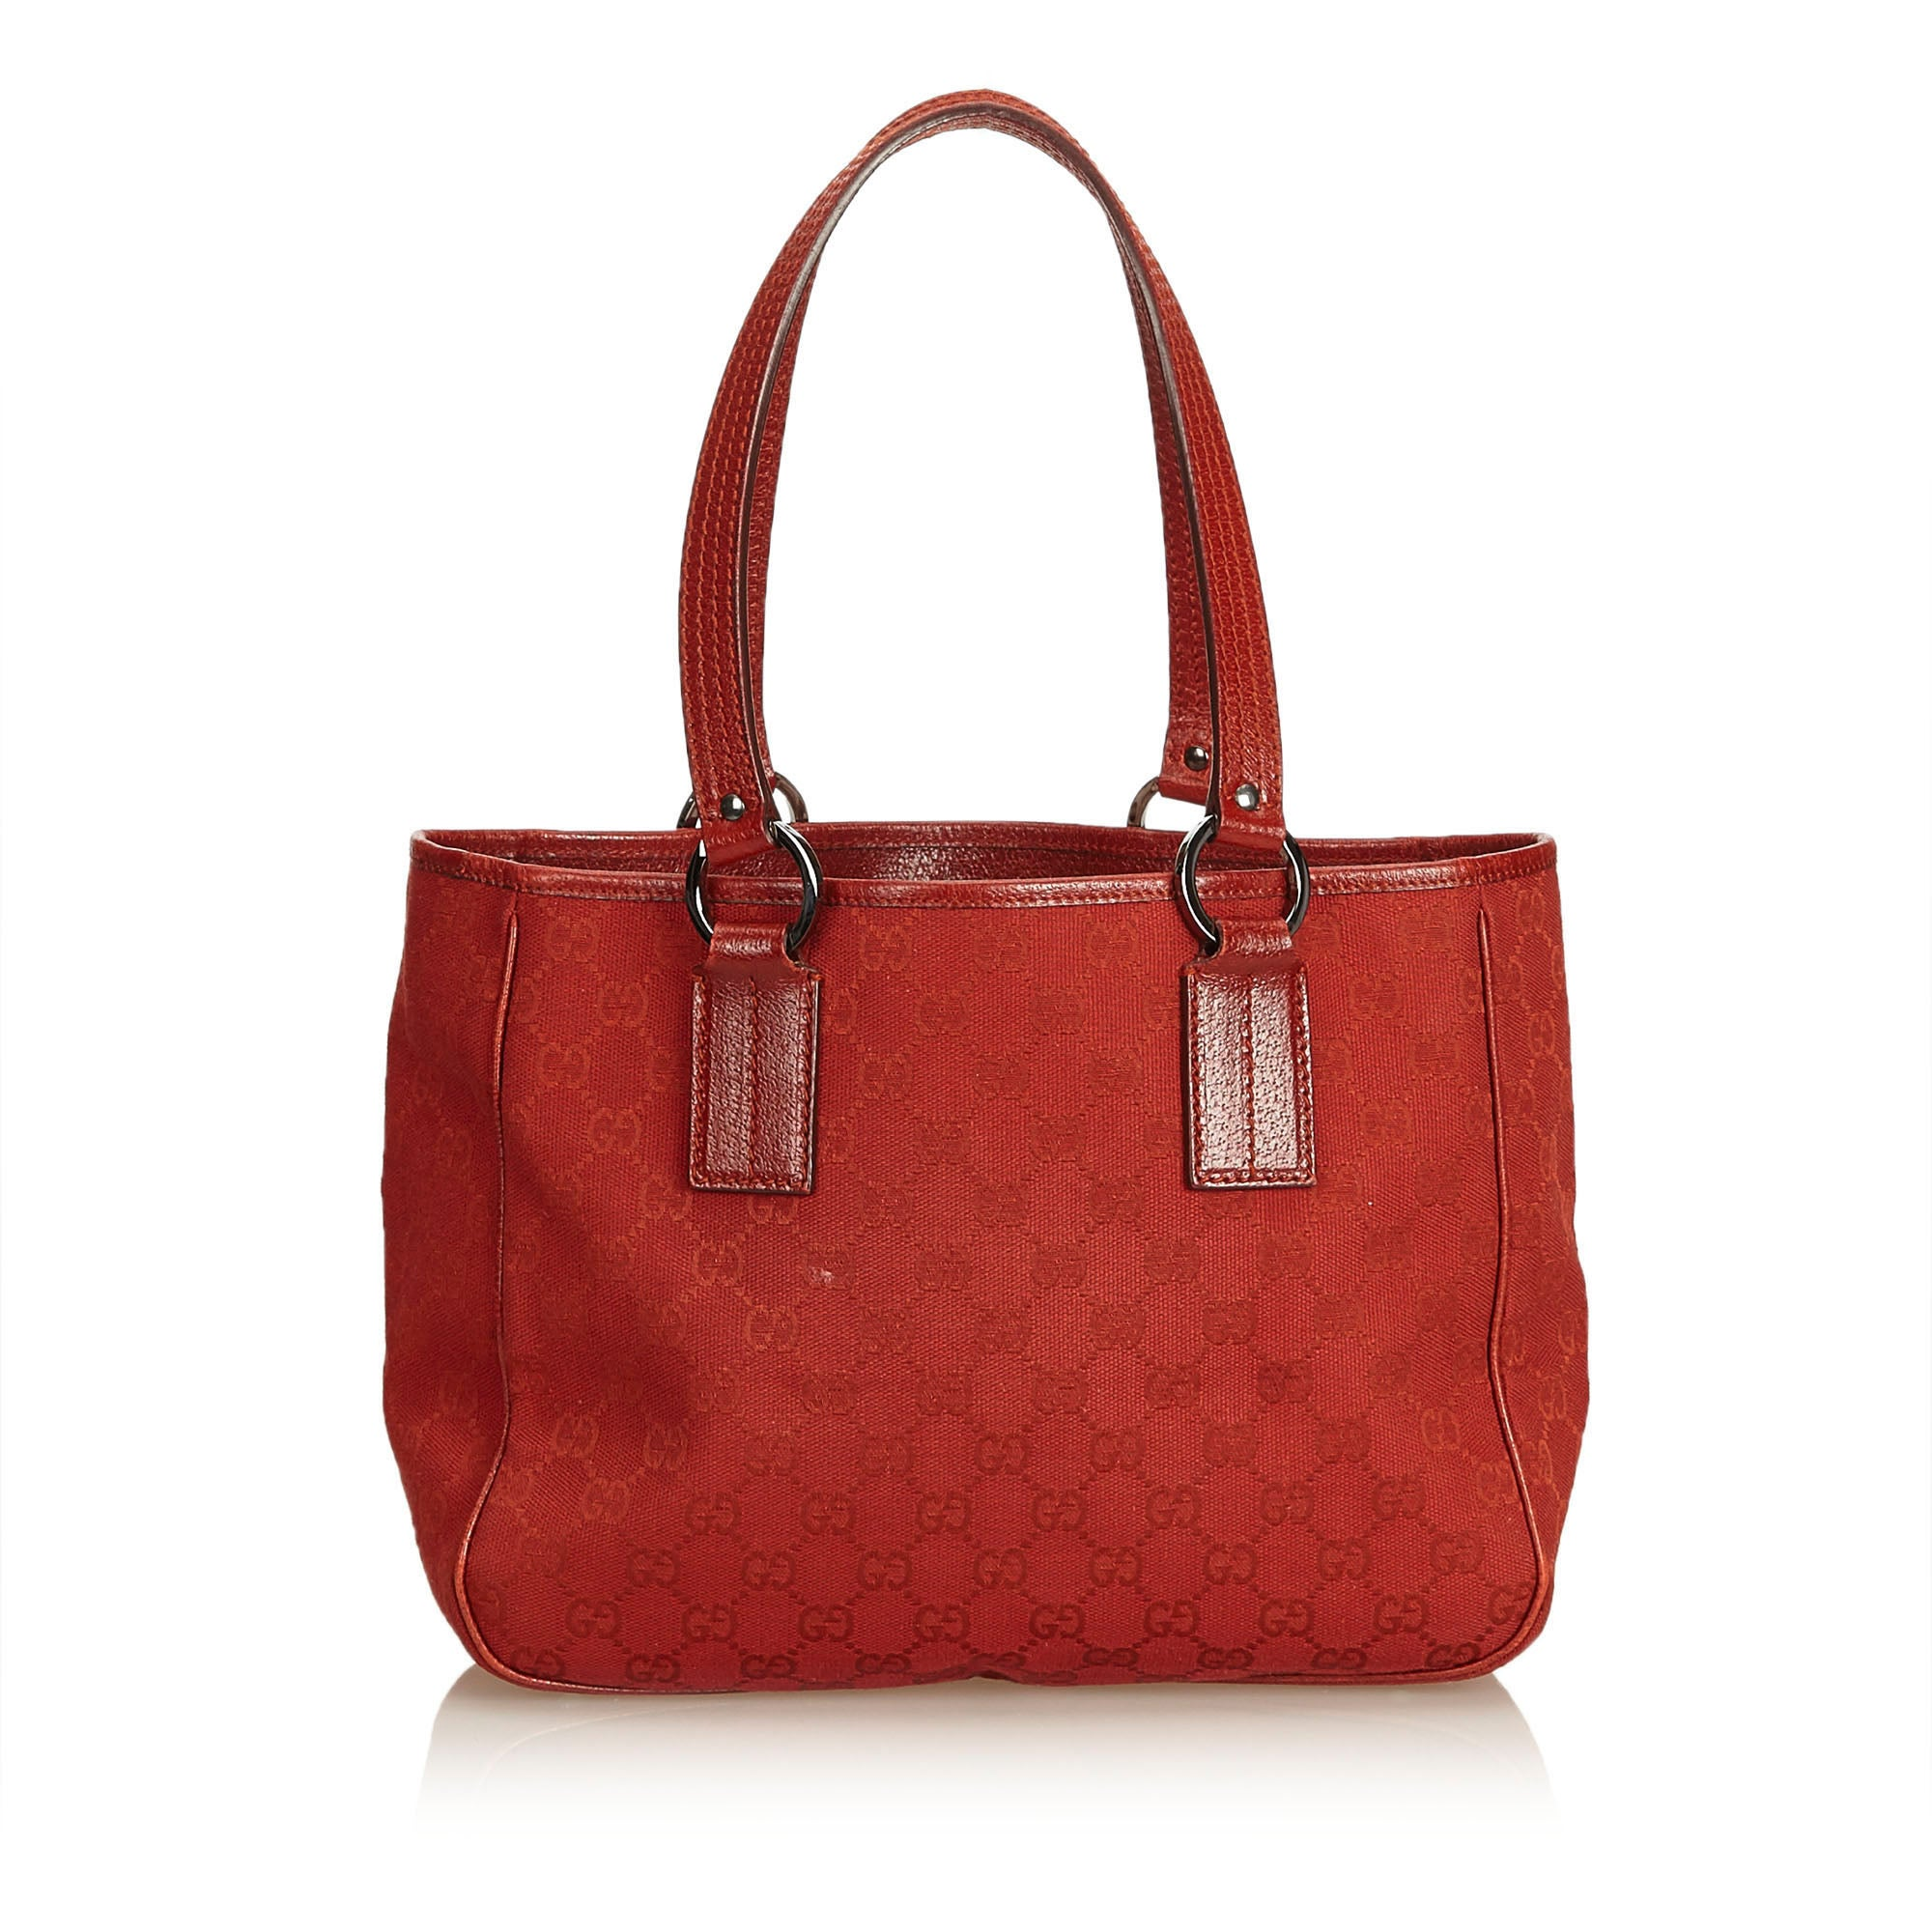 d6162644fef Gucci Red Guccissima Jacquard Tote Bag at 1stdibs